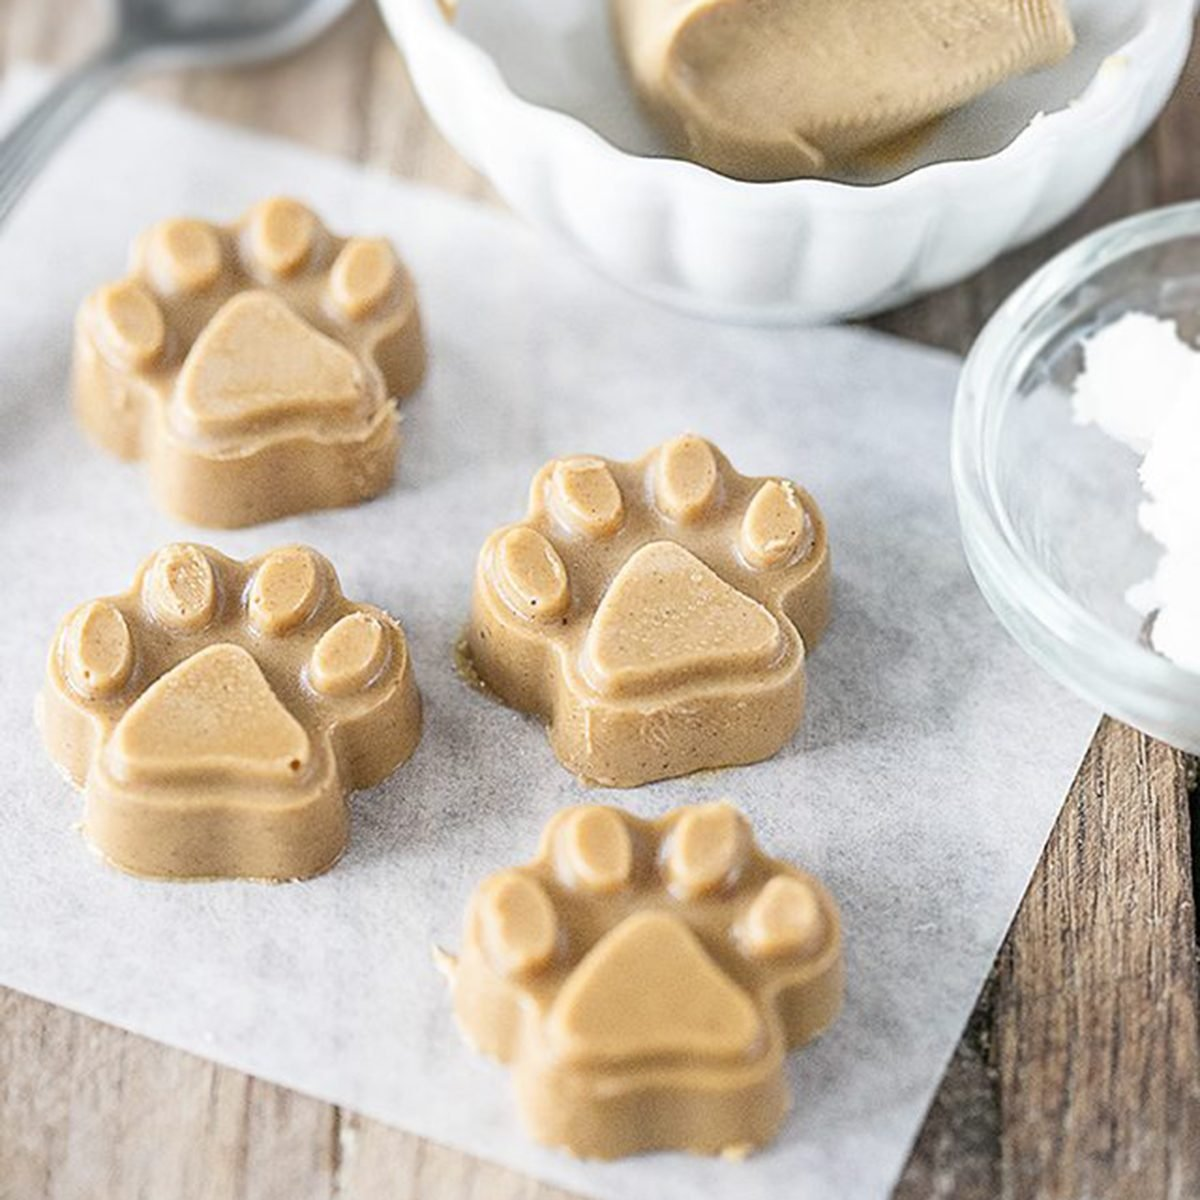 9 Homemade Dog Treat Recipes For Your Pooch Taste Of Home